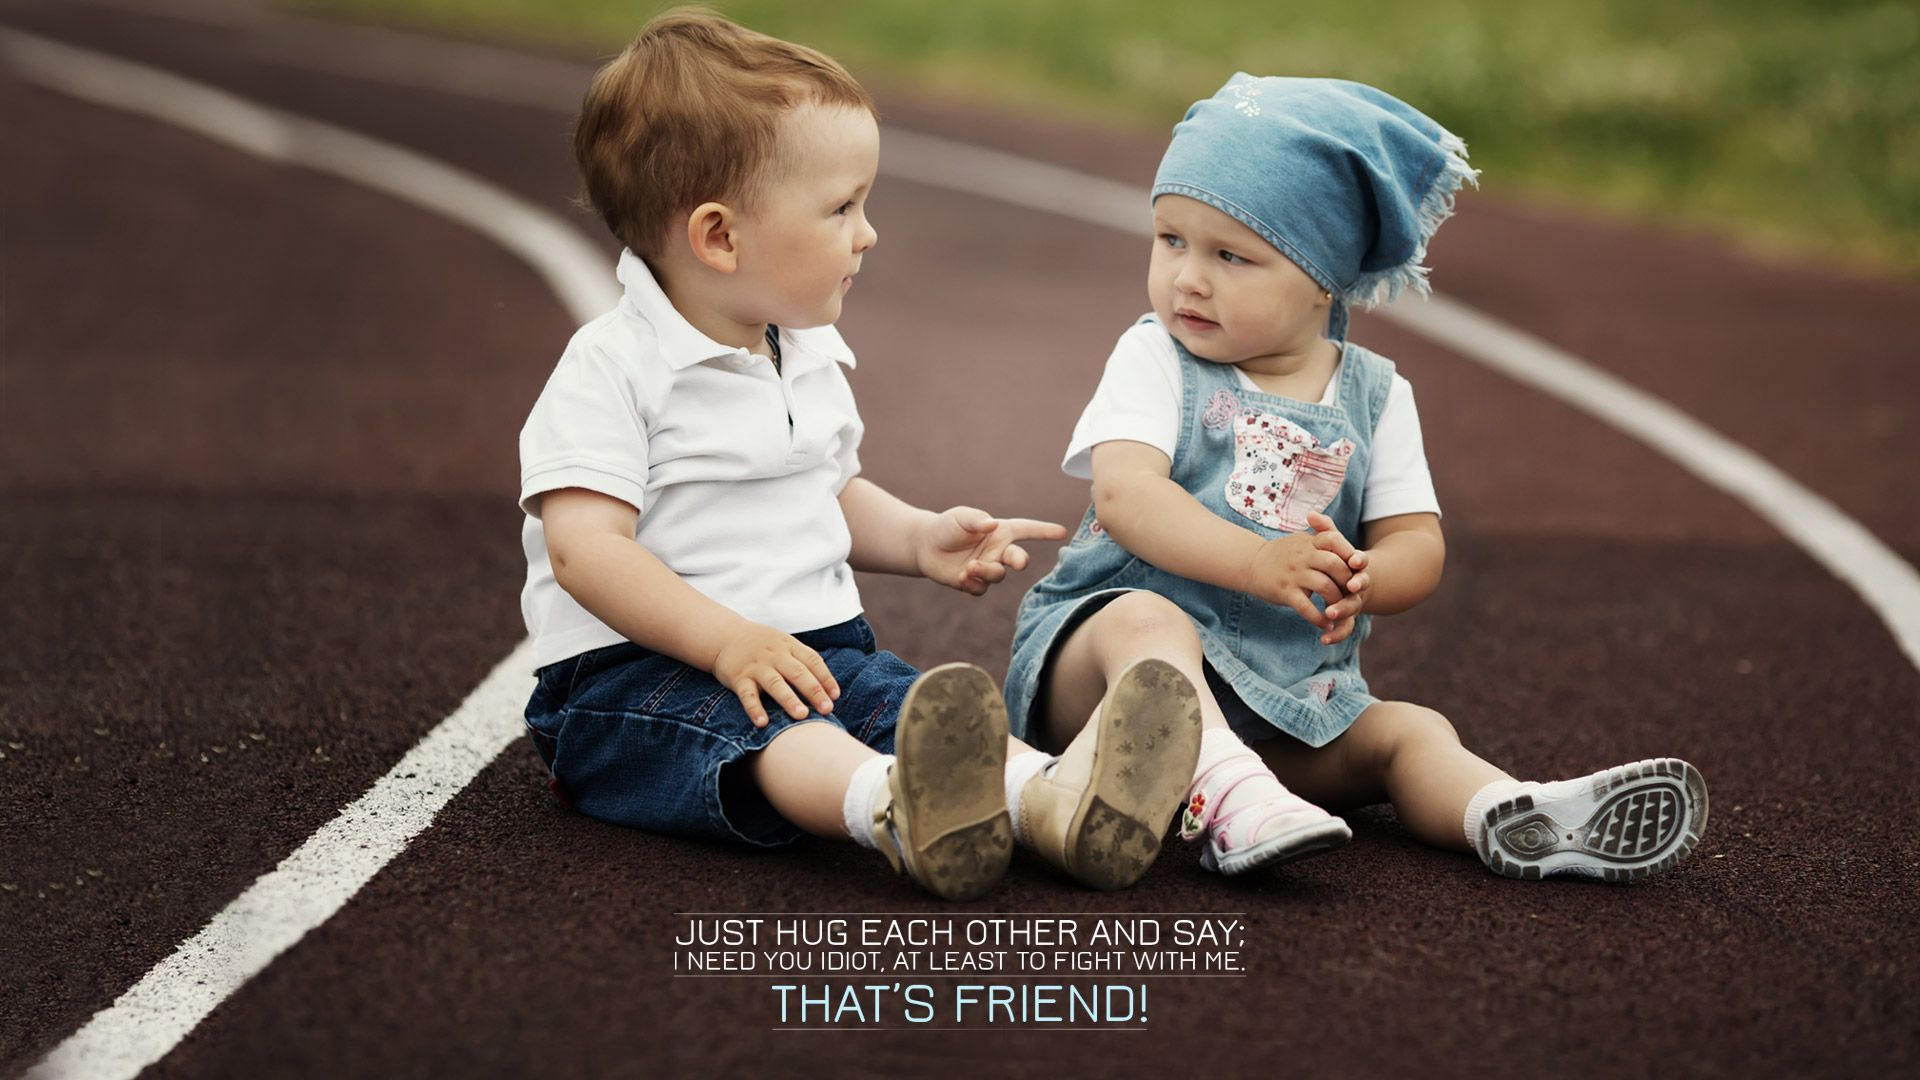 Friendship day wallpaper download free friendship day wallpaper in